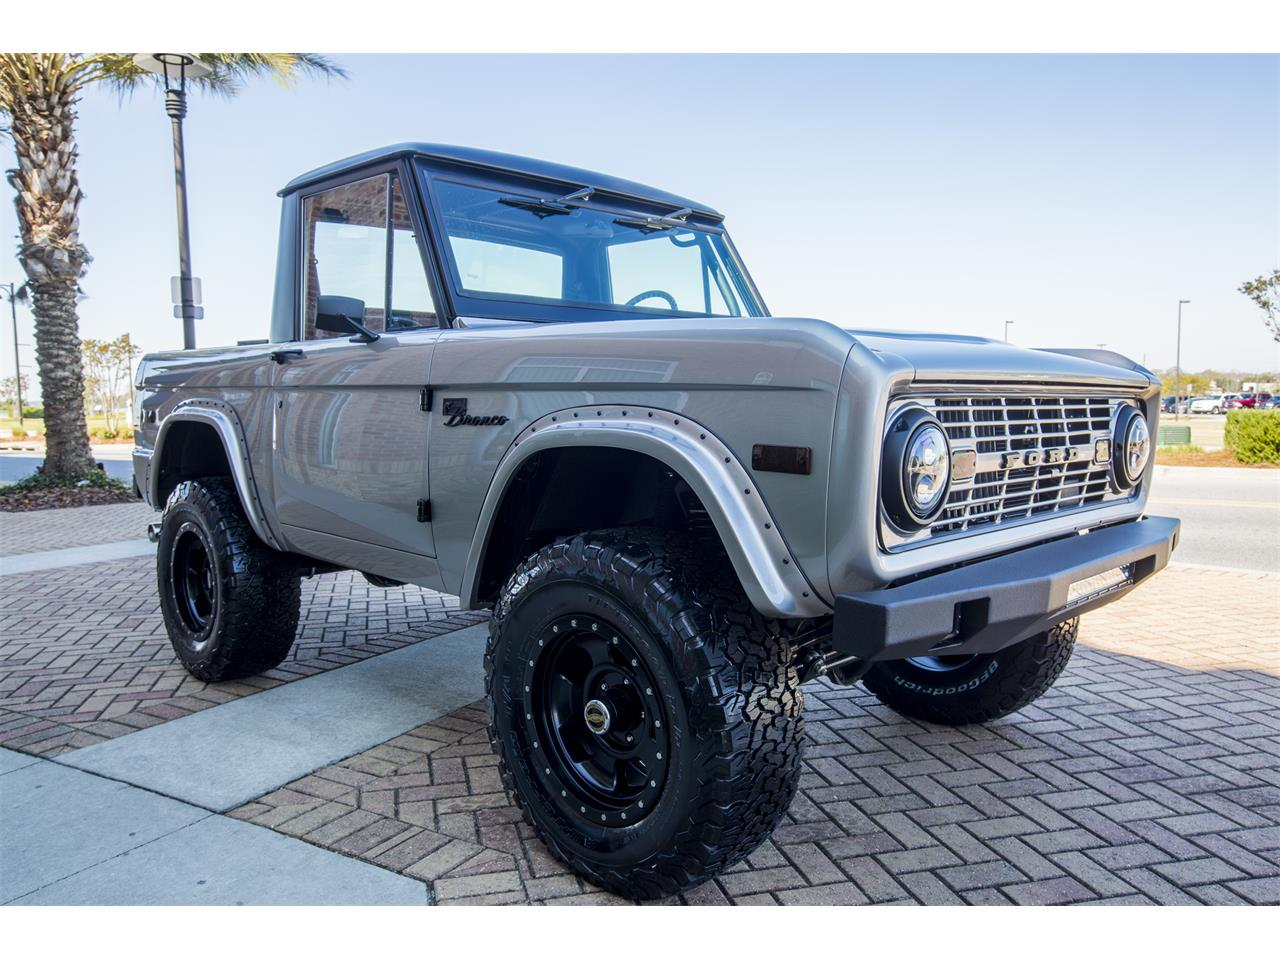 Large picture of 67 bronco nke1